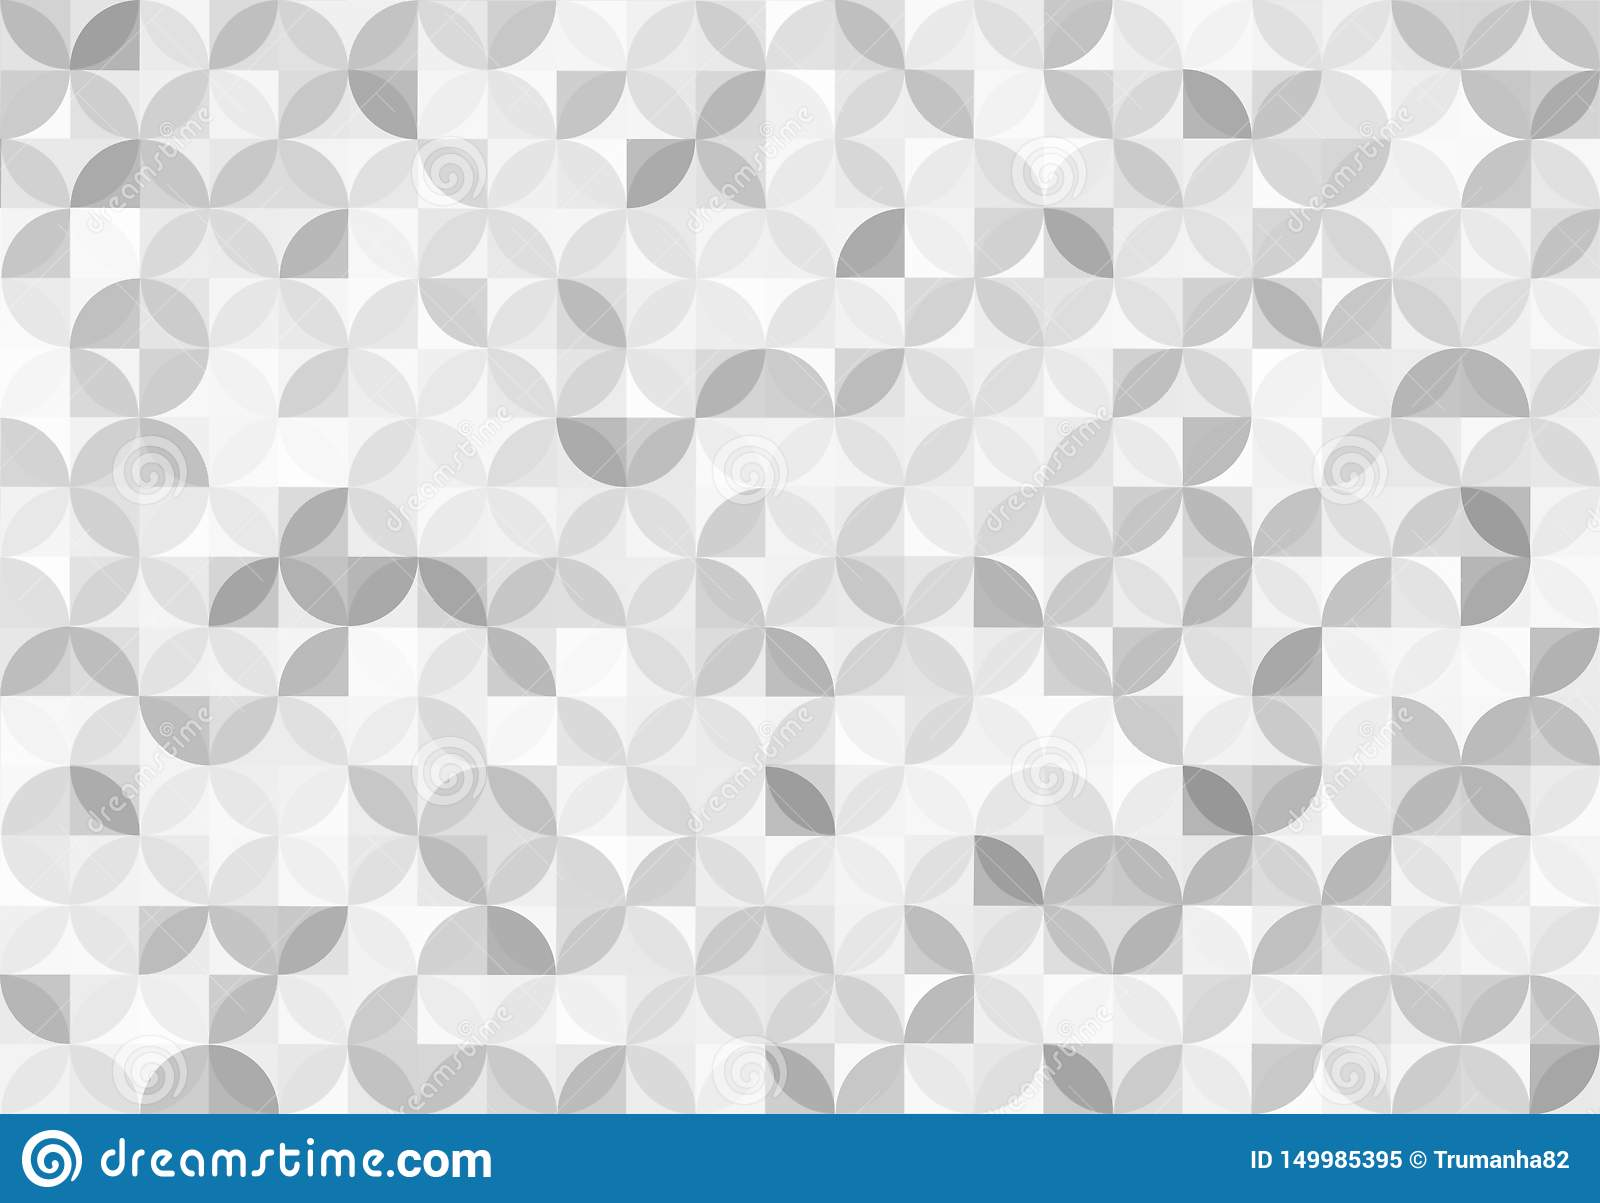 Abstract Seamless Shiny Grey Circles and Squares Pattern Background